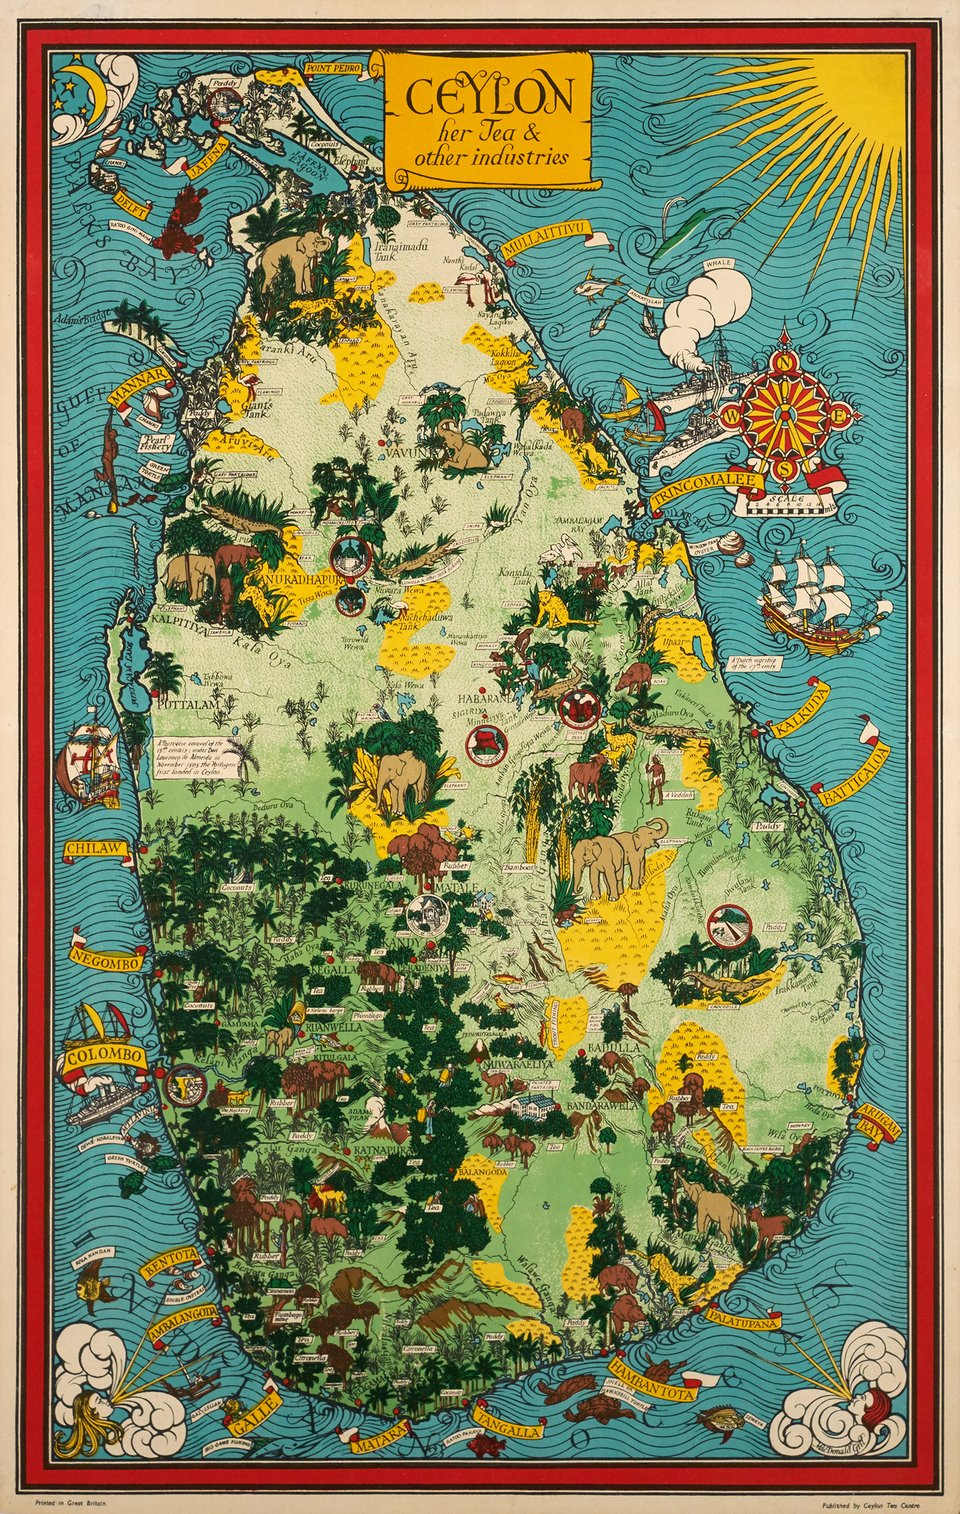 Ceylon, Her tea and other industries – Vintage poster – Leslie MacDonald GILL – 1950